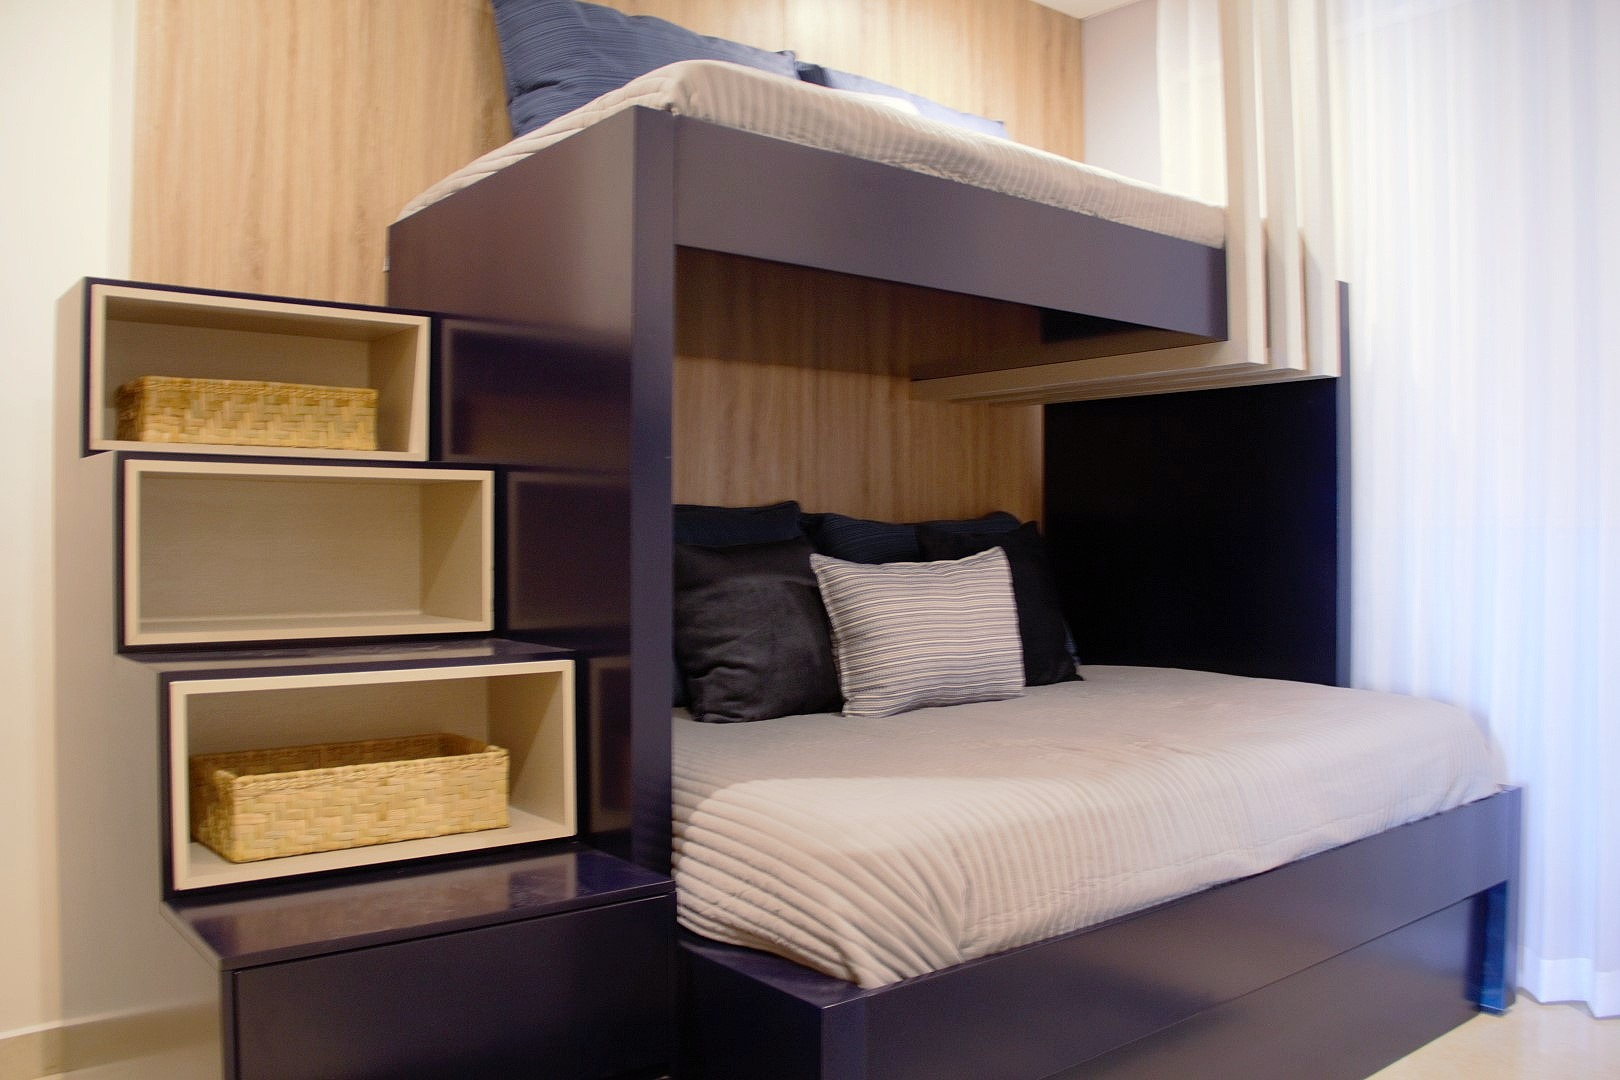 Second bedroom with bunk-beds for 3 people.